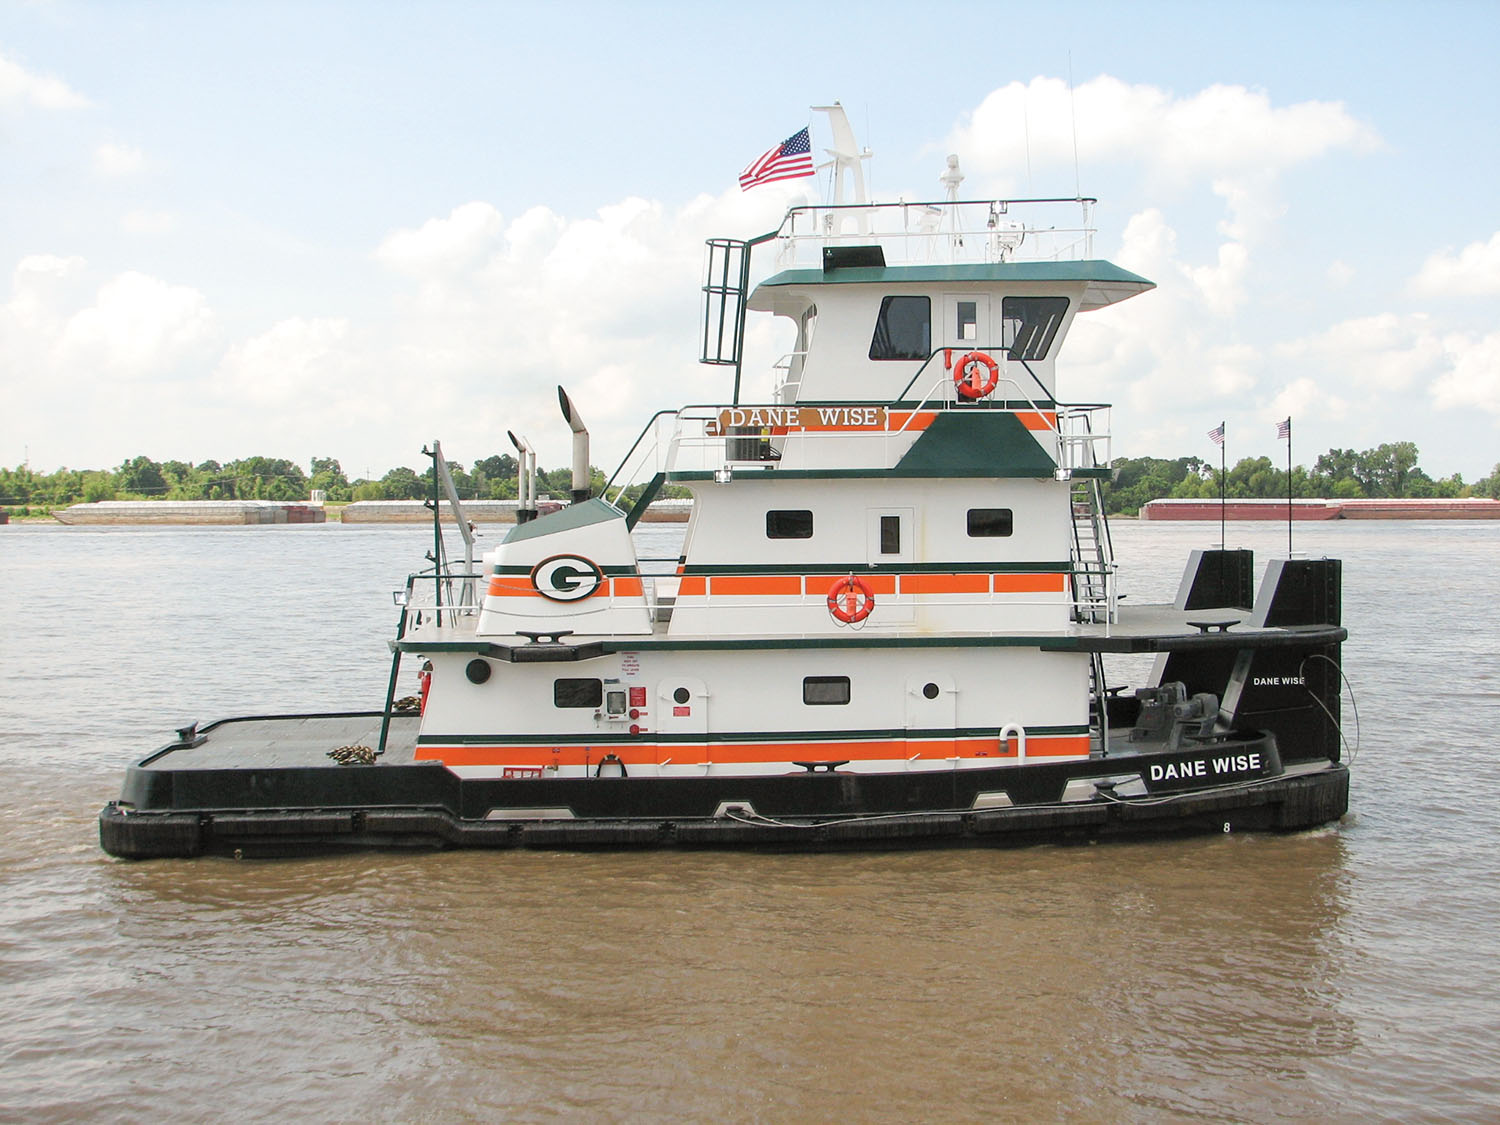 The new boat will resemble the mv. Dane Wise, shown in this 2014 photo, only it will be a foot shorter and a foot narrower.